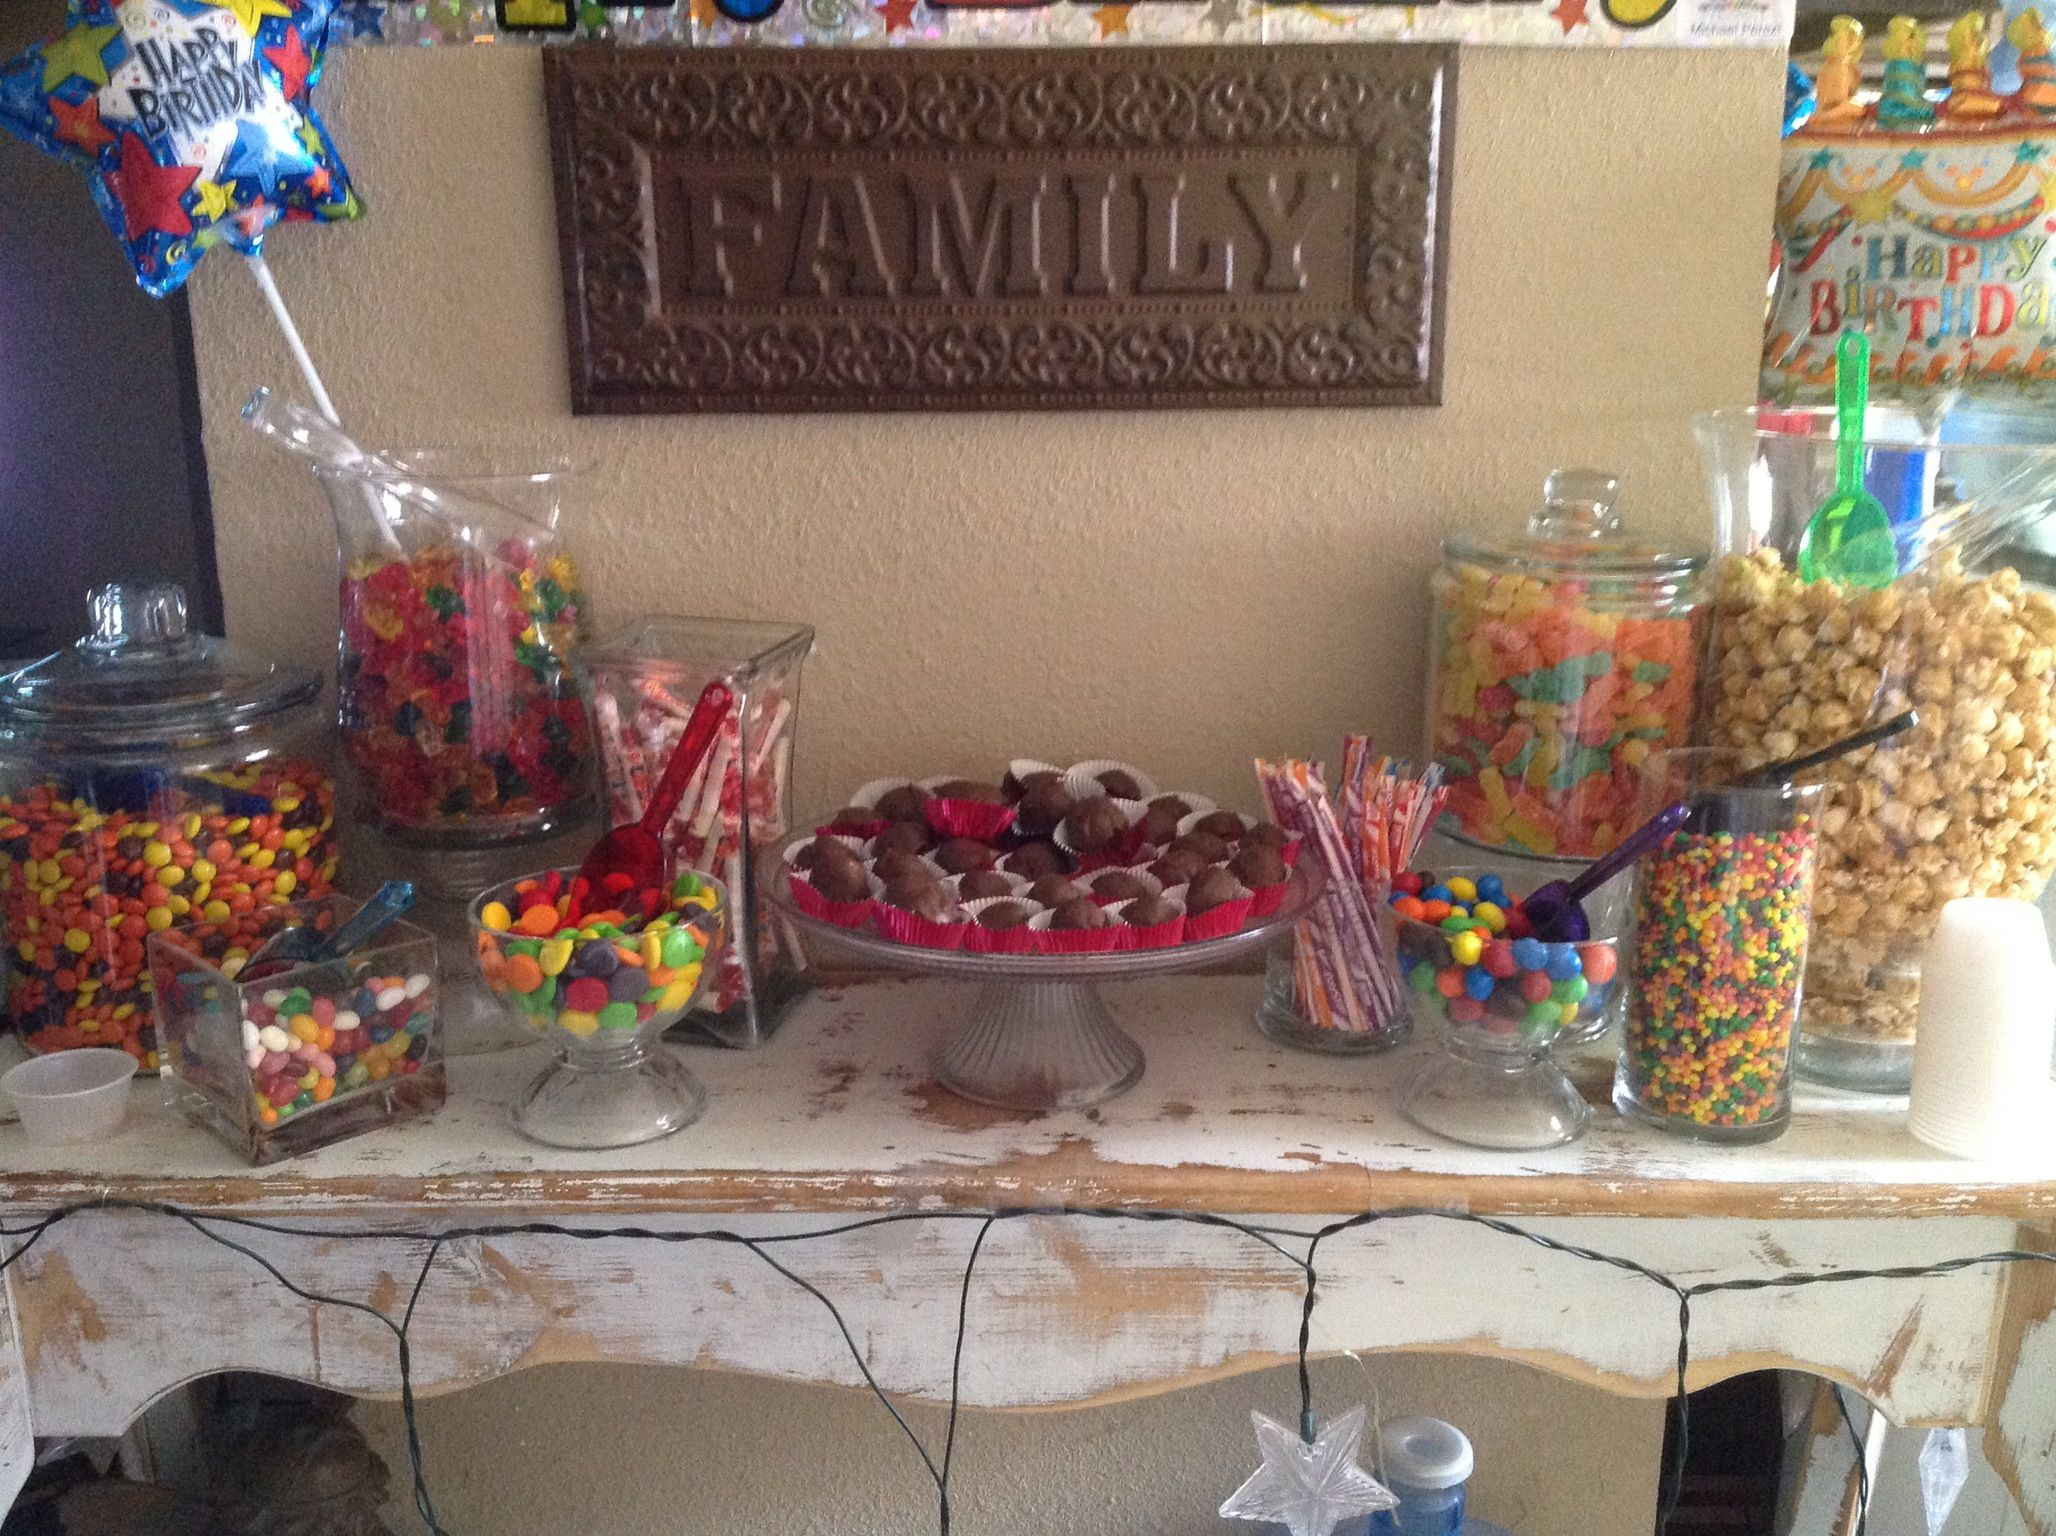 18th birthday party ideas pinterest for 18th birthday party decoration ideas